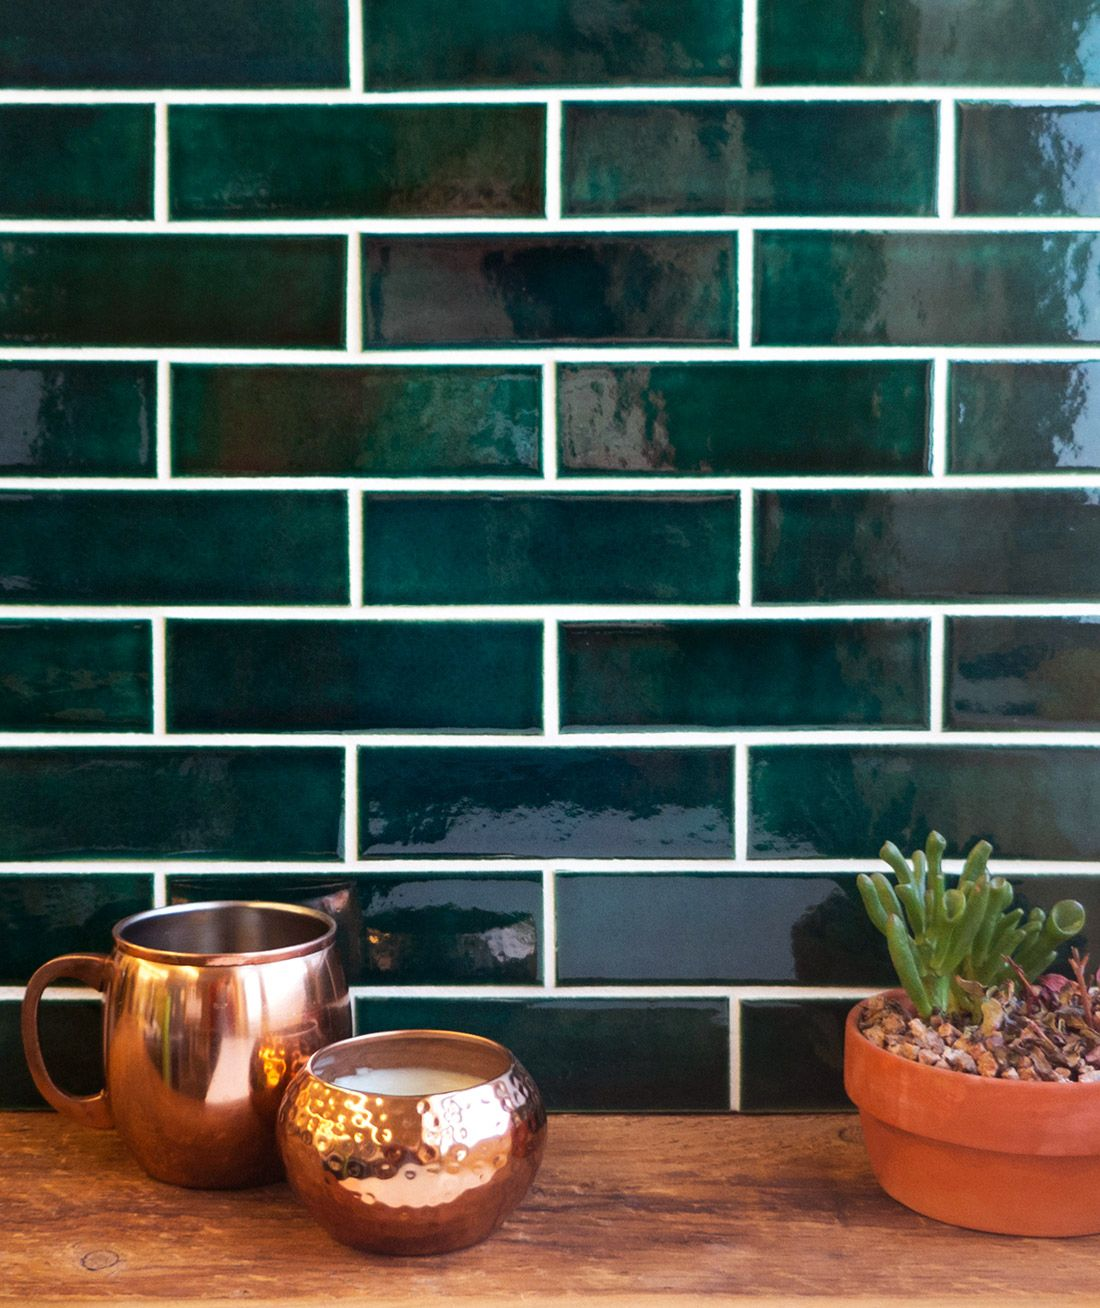 Green With Envy: 3 Kitchens That Pair Green Tile & Copper Accents ...